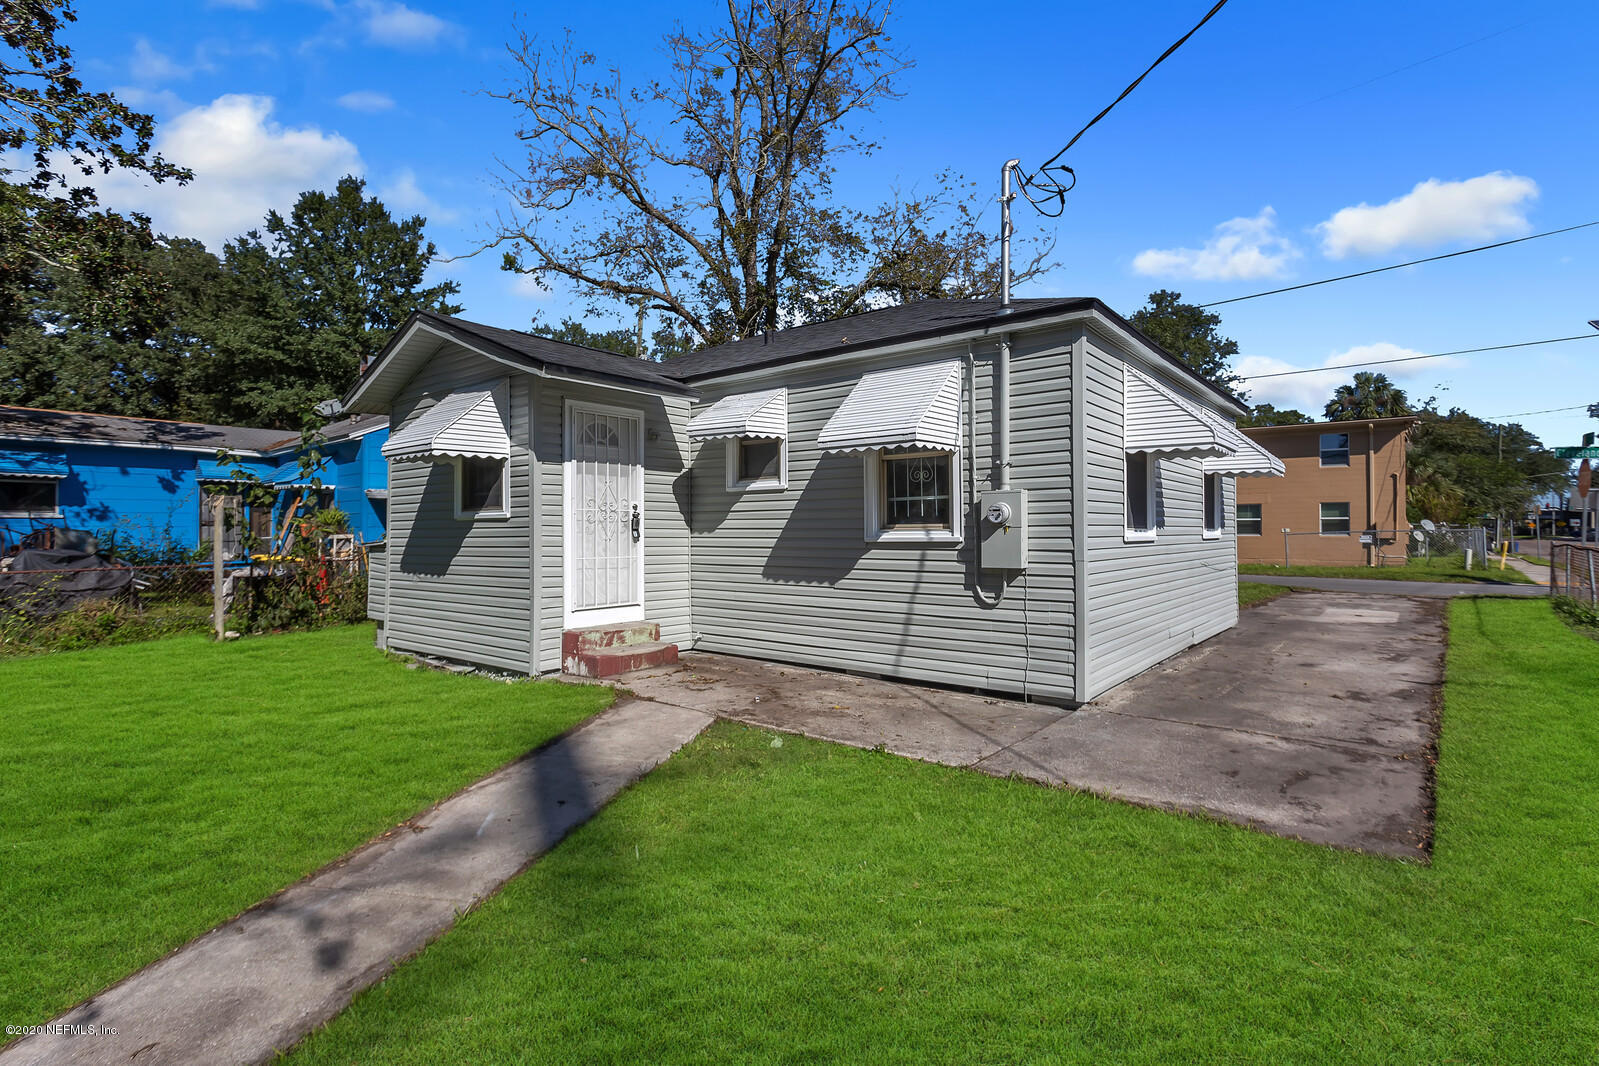 1804 CLEVELAND, JACKSONVILLE, FLORIDA 32209, 2 Bedrooms Bedrooms, ,1 BathroomBathrooms,Residential,For sale,CLEVELAND,1081404